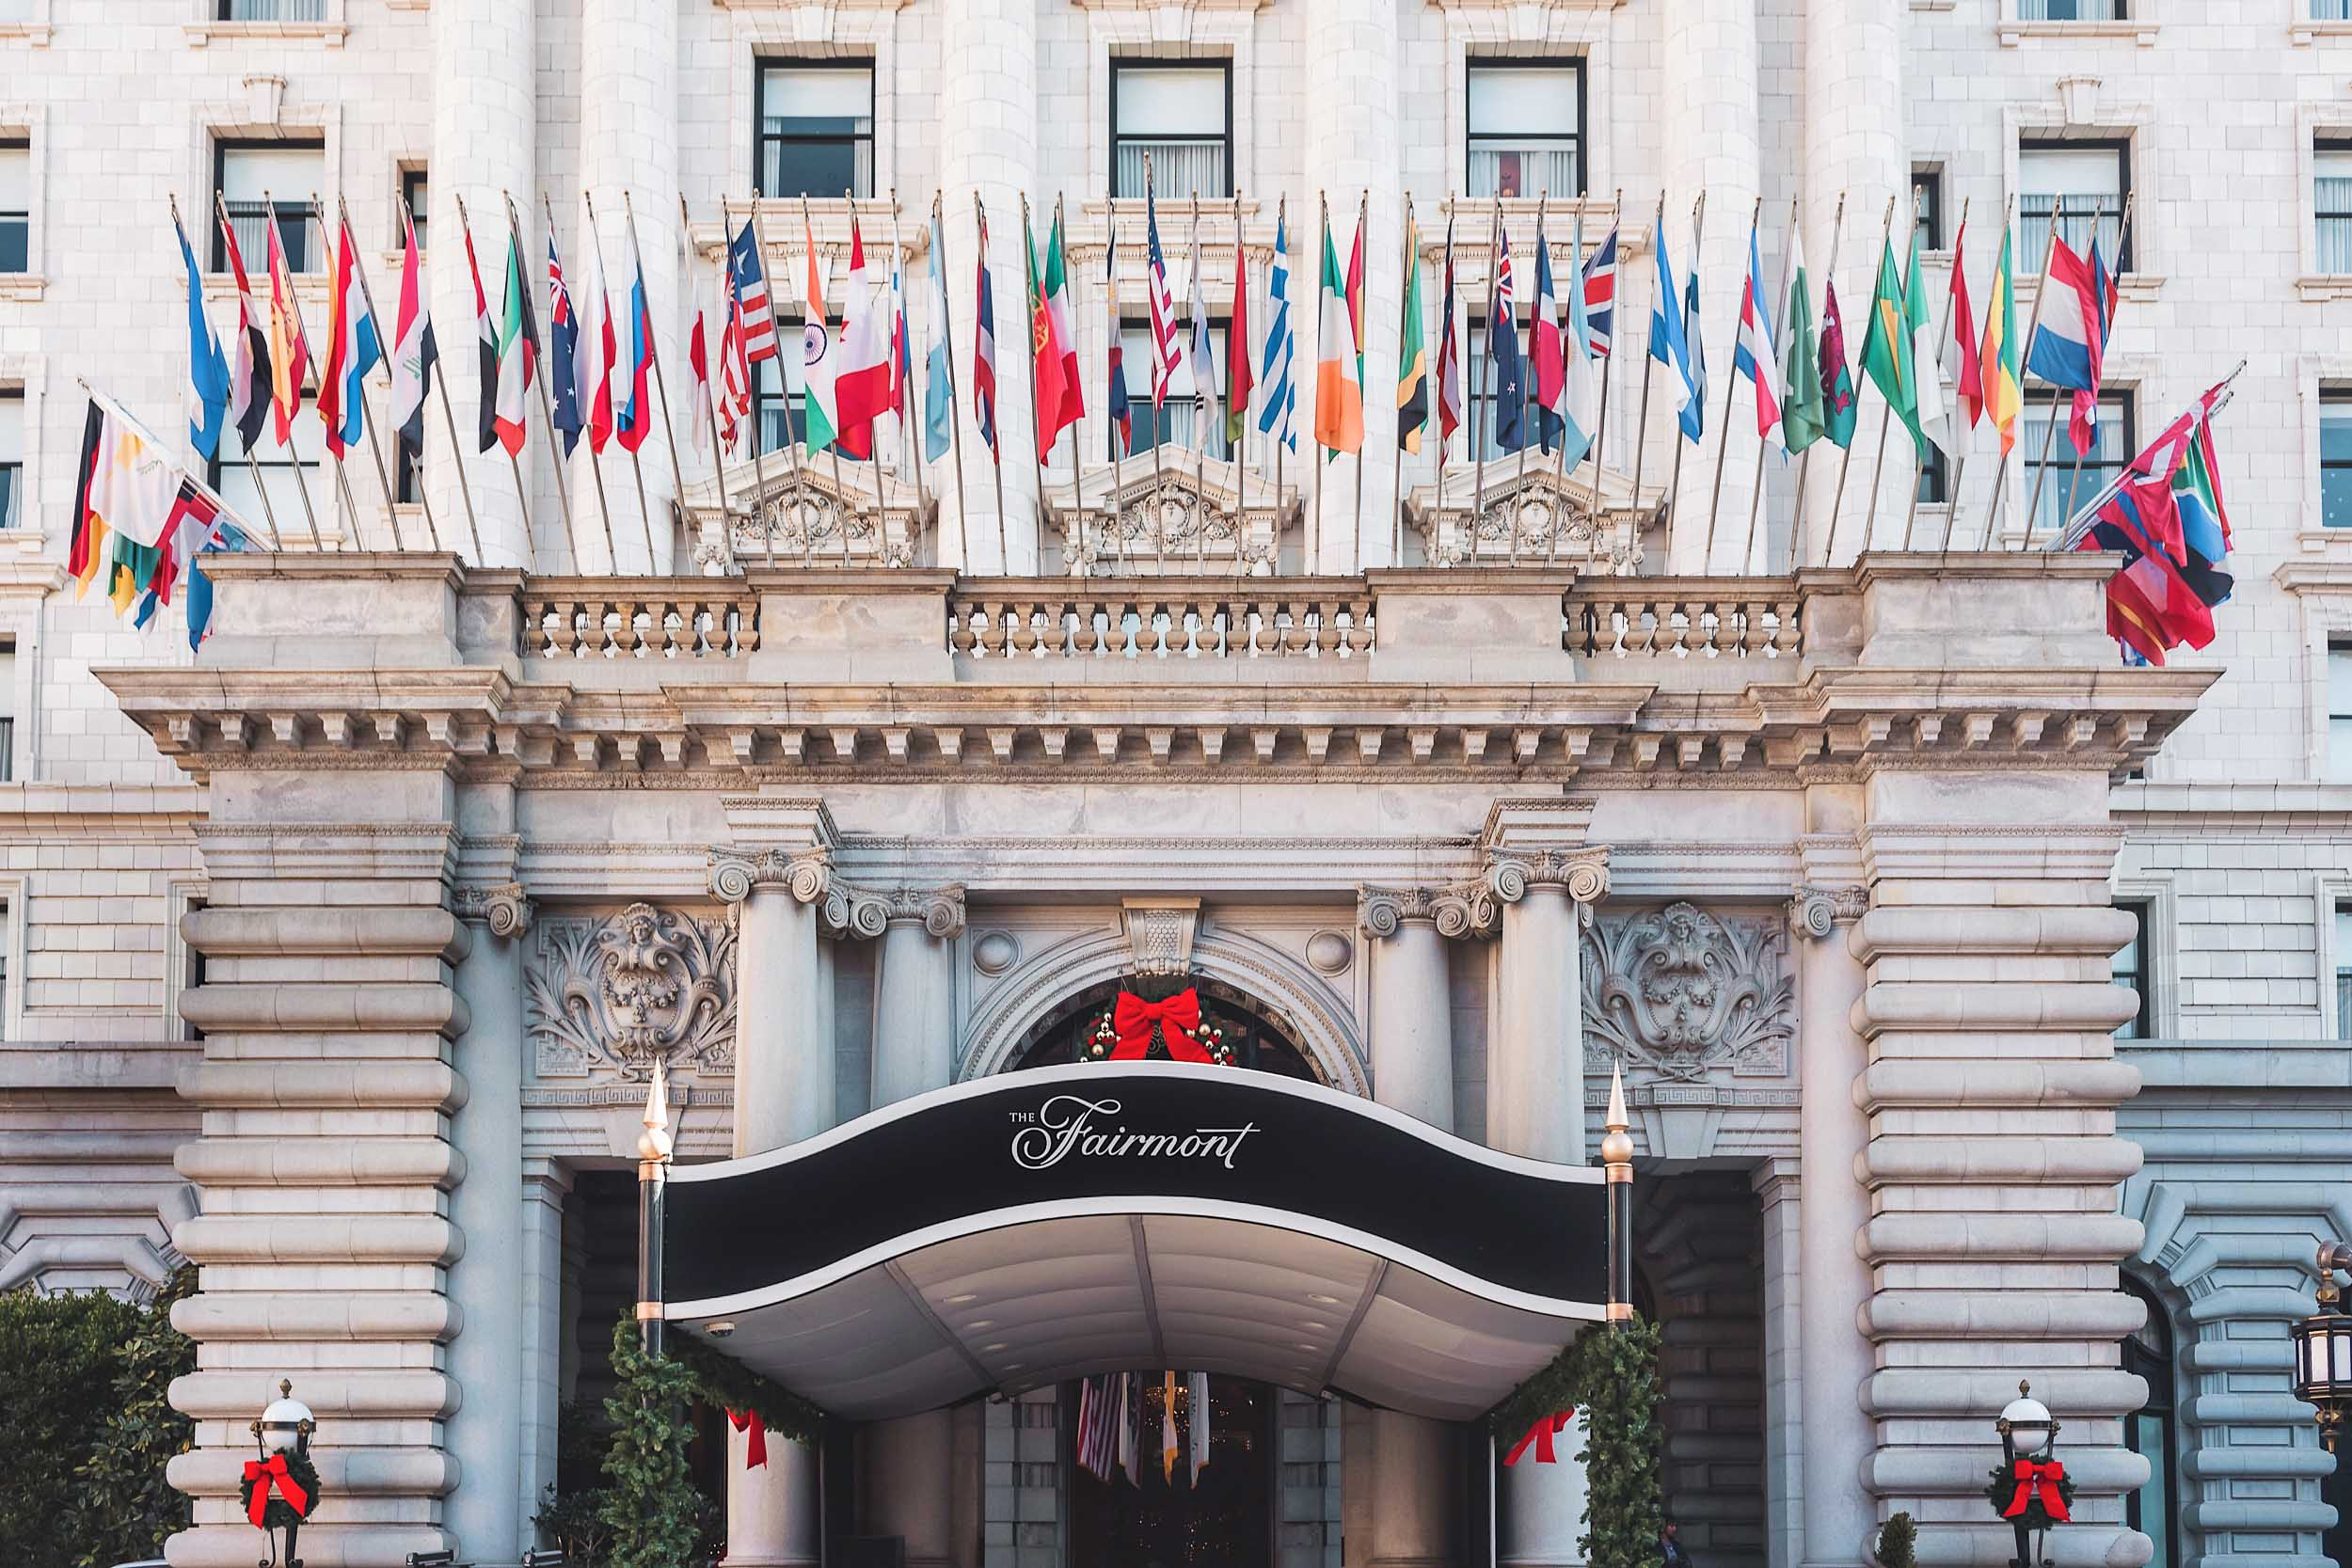 The Fairmont San Francisco is a world-famous, five star luxury hotel located in the city's Nob Hill neighborhood